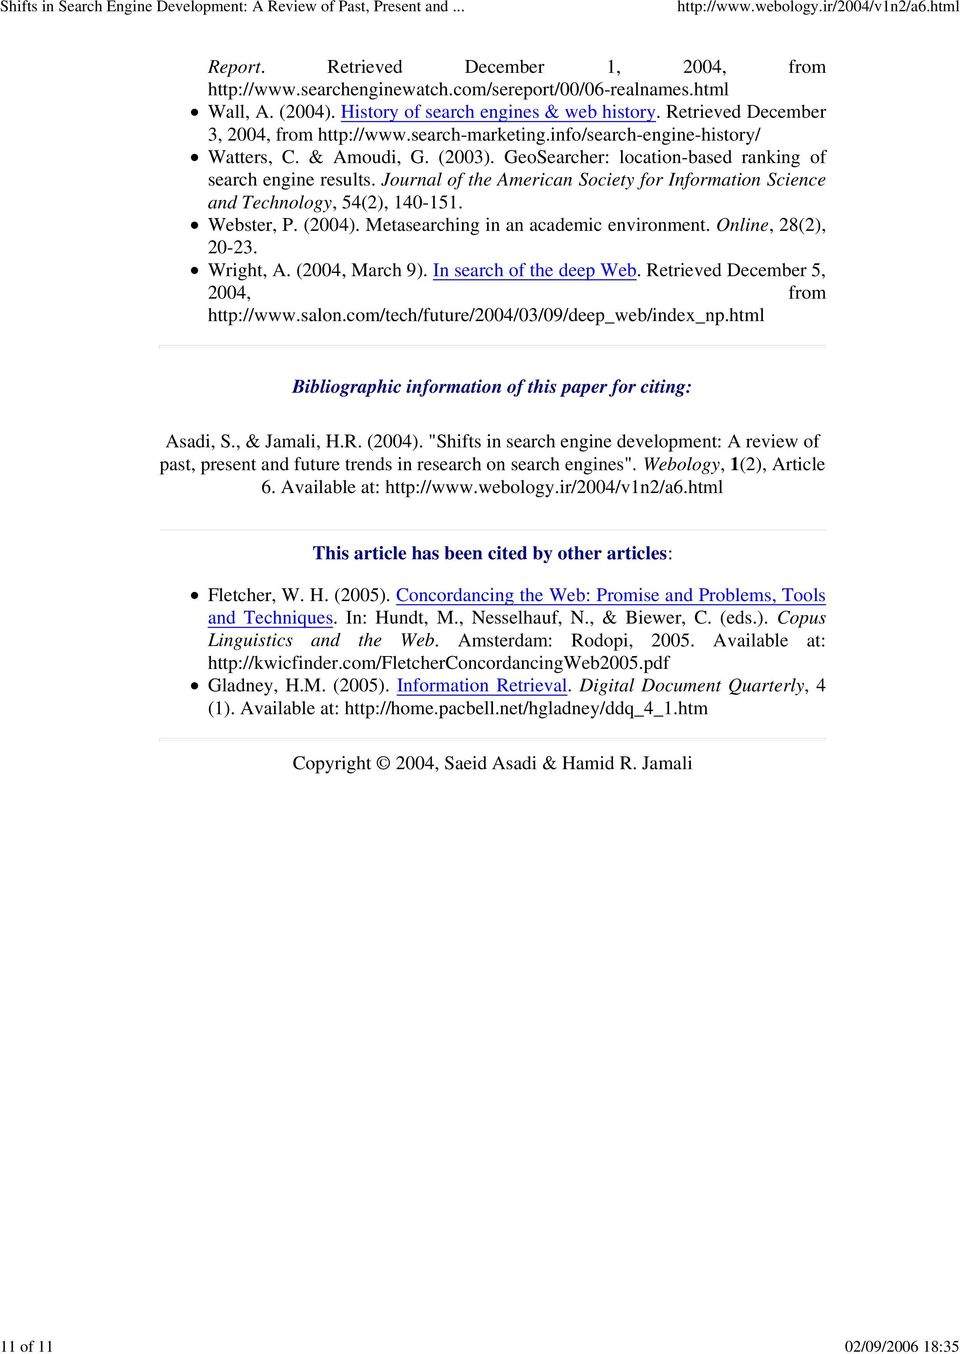 Computer science research paper search engine